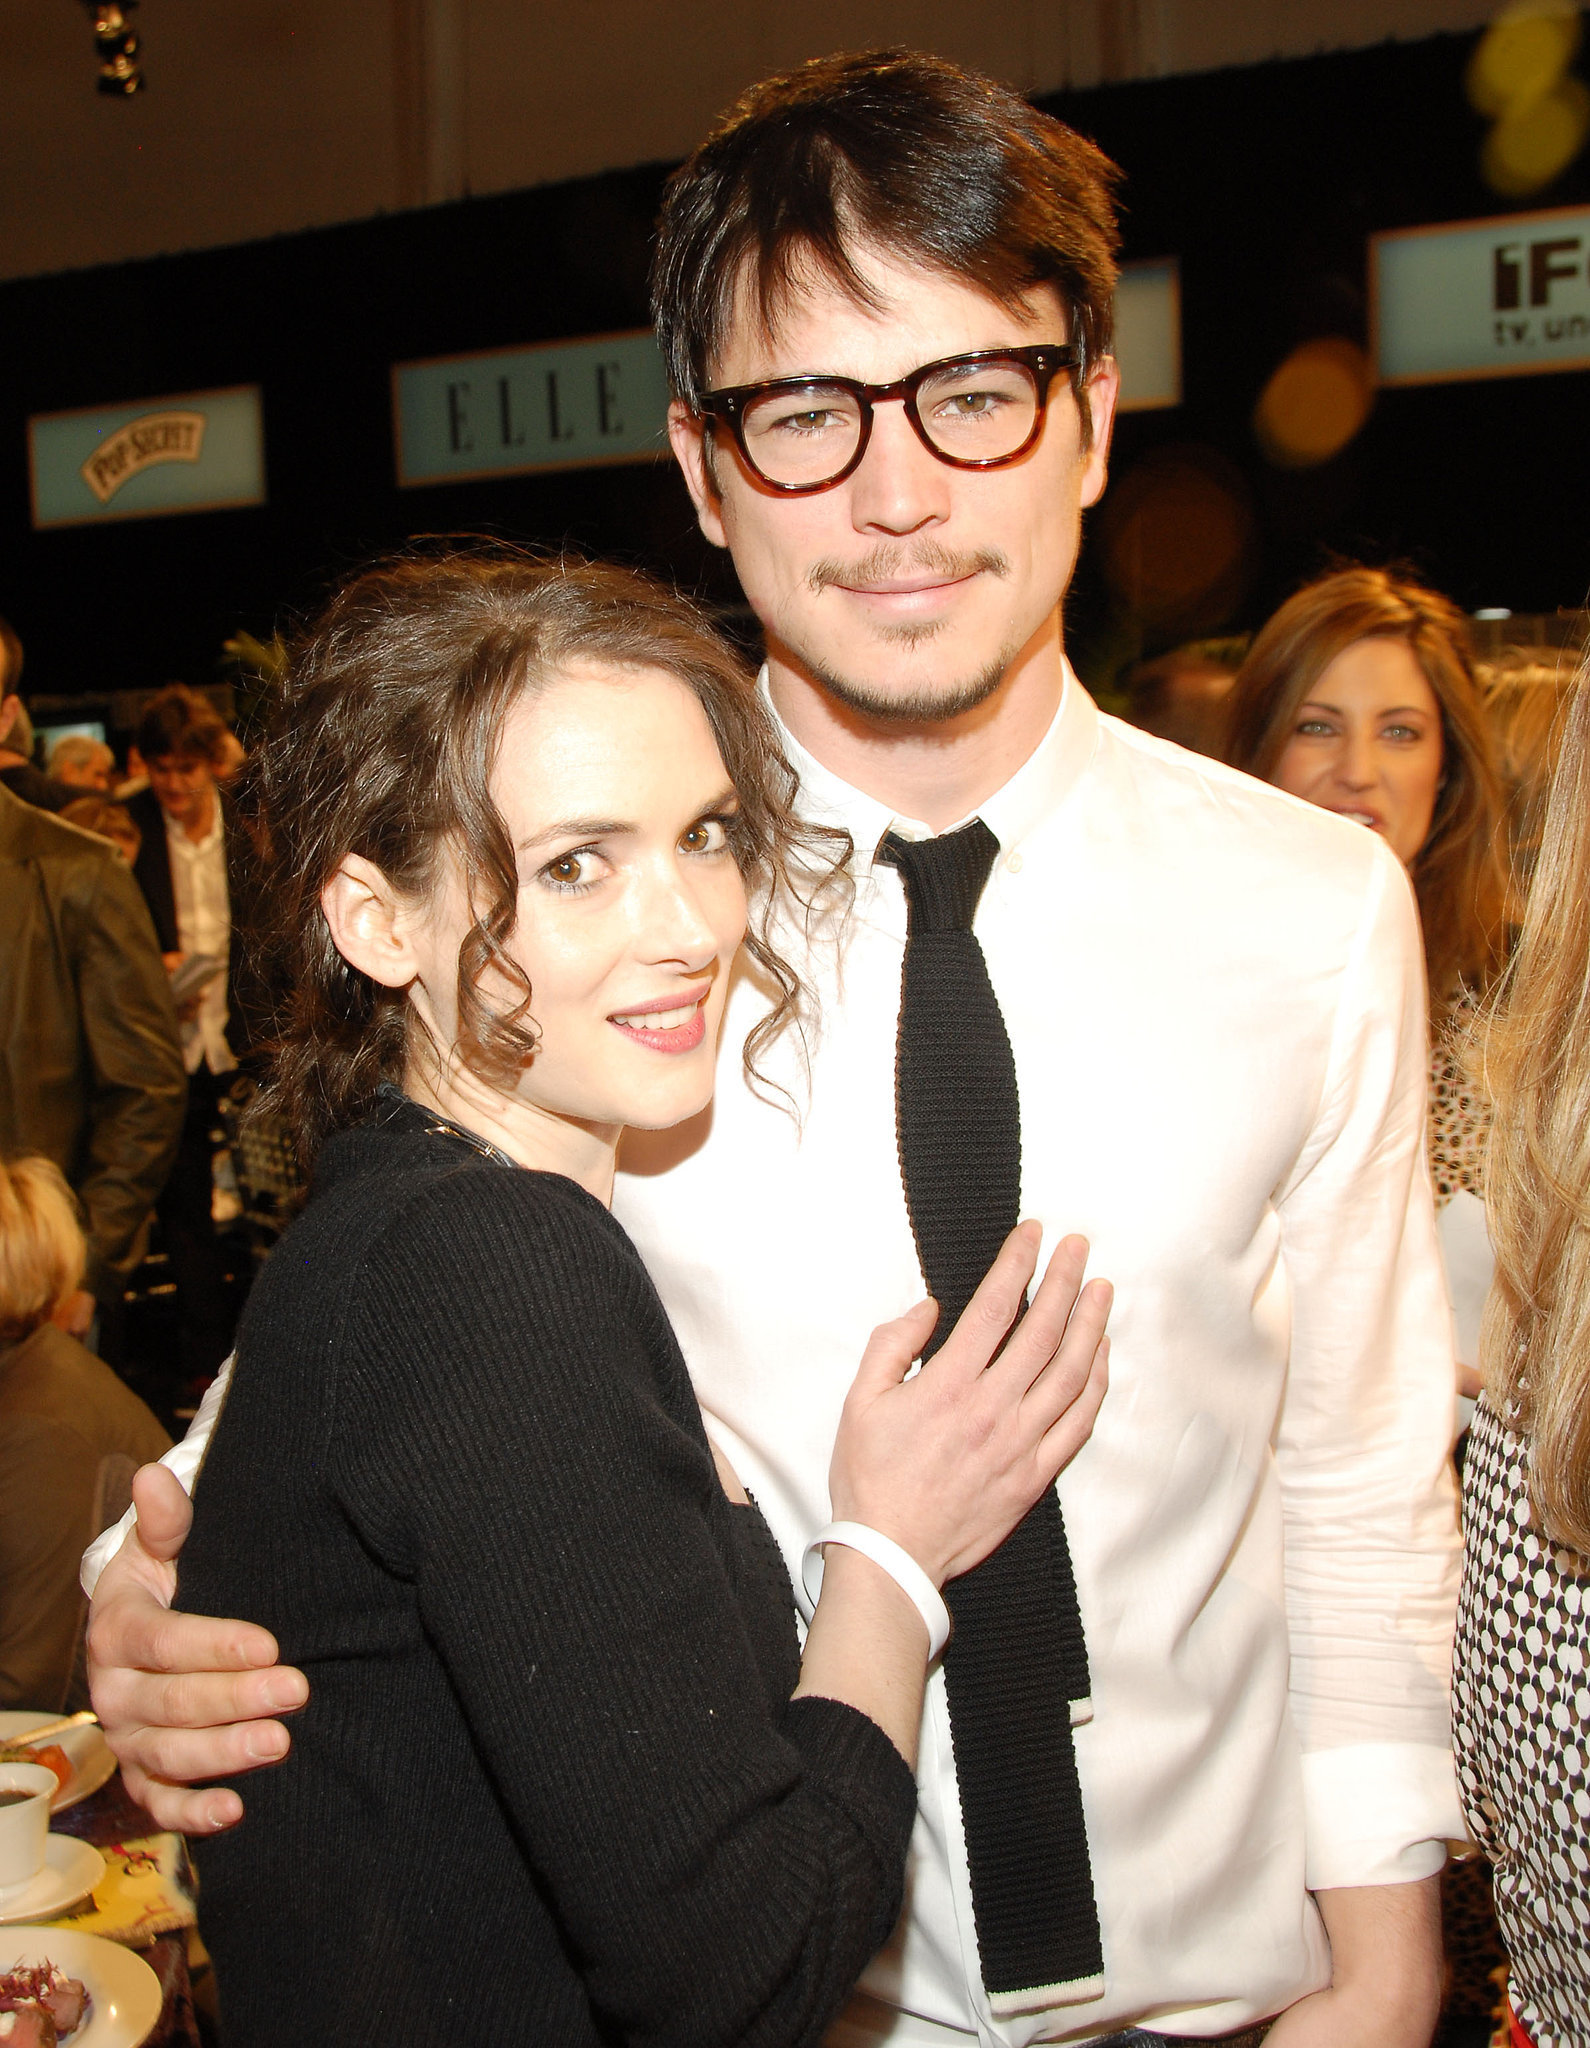 Even Winona Ryder Was Like, This Guy Is Smokin'